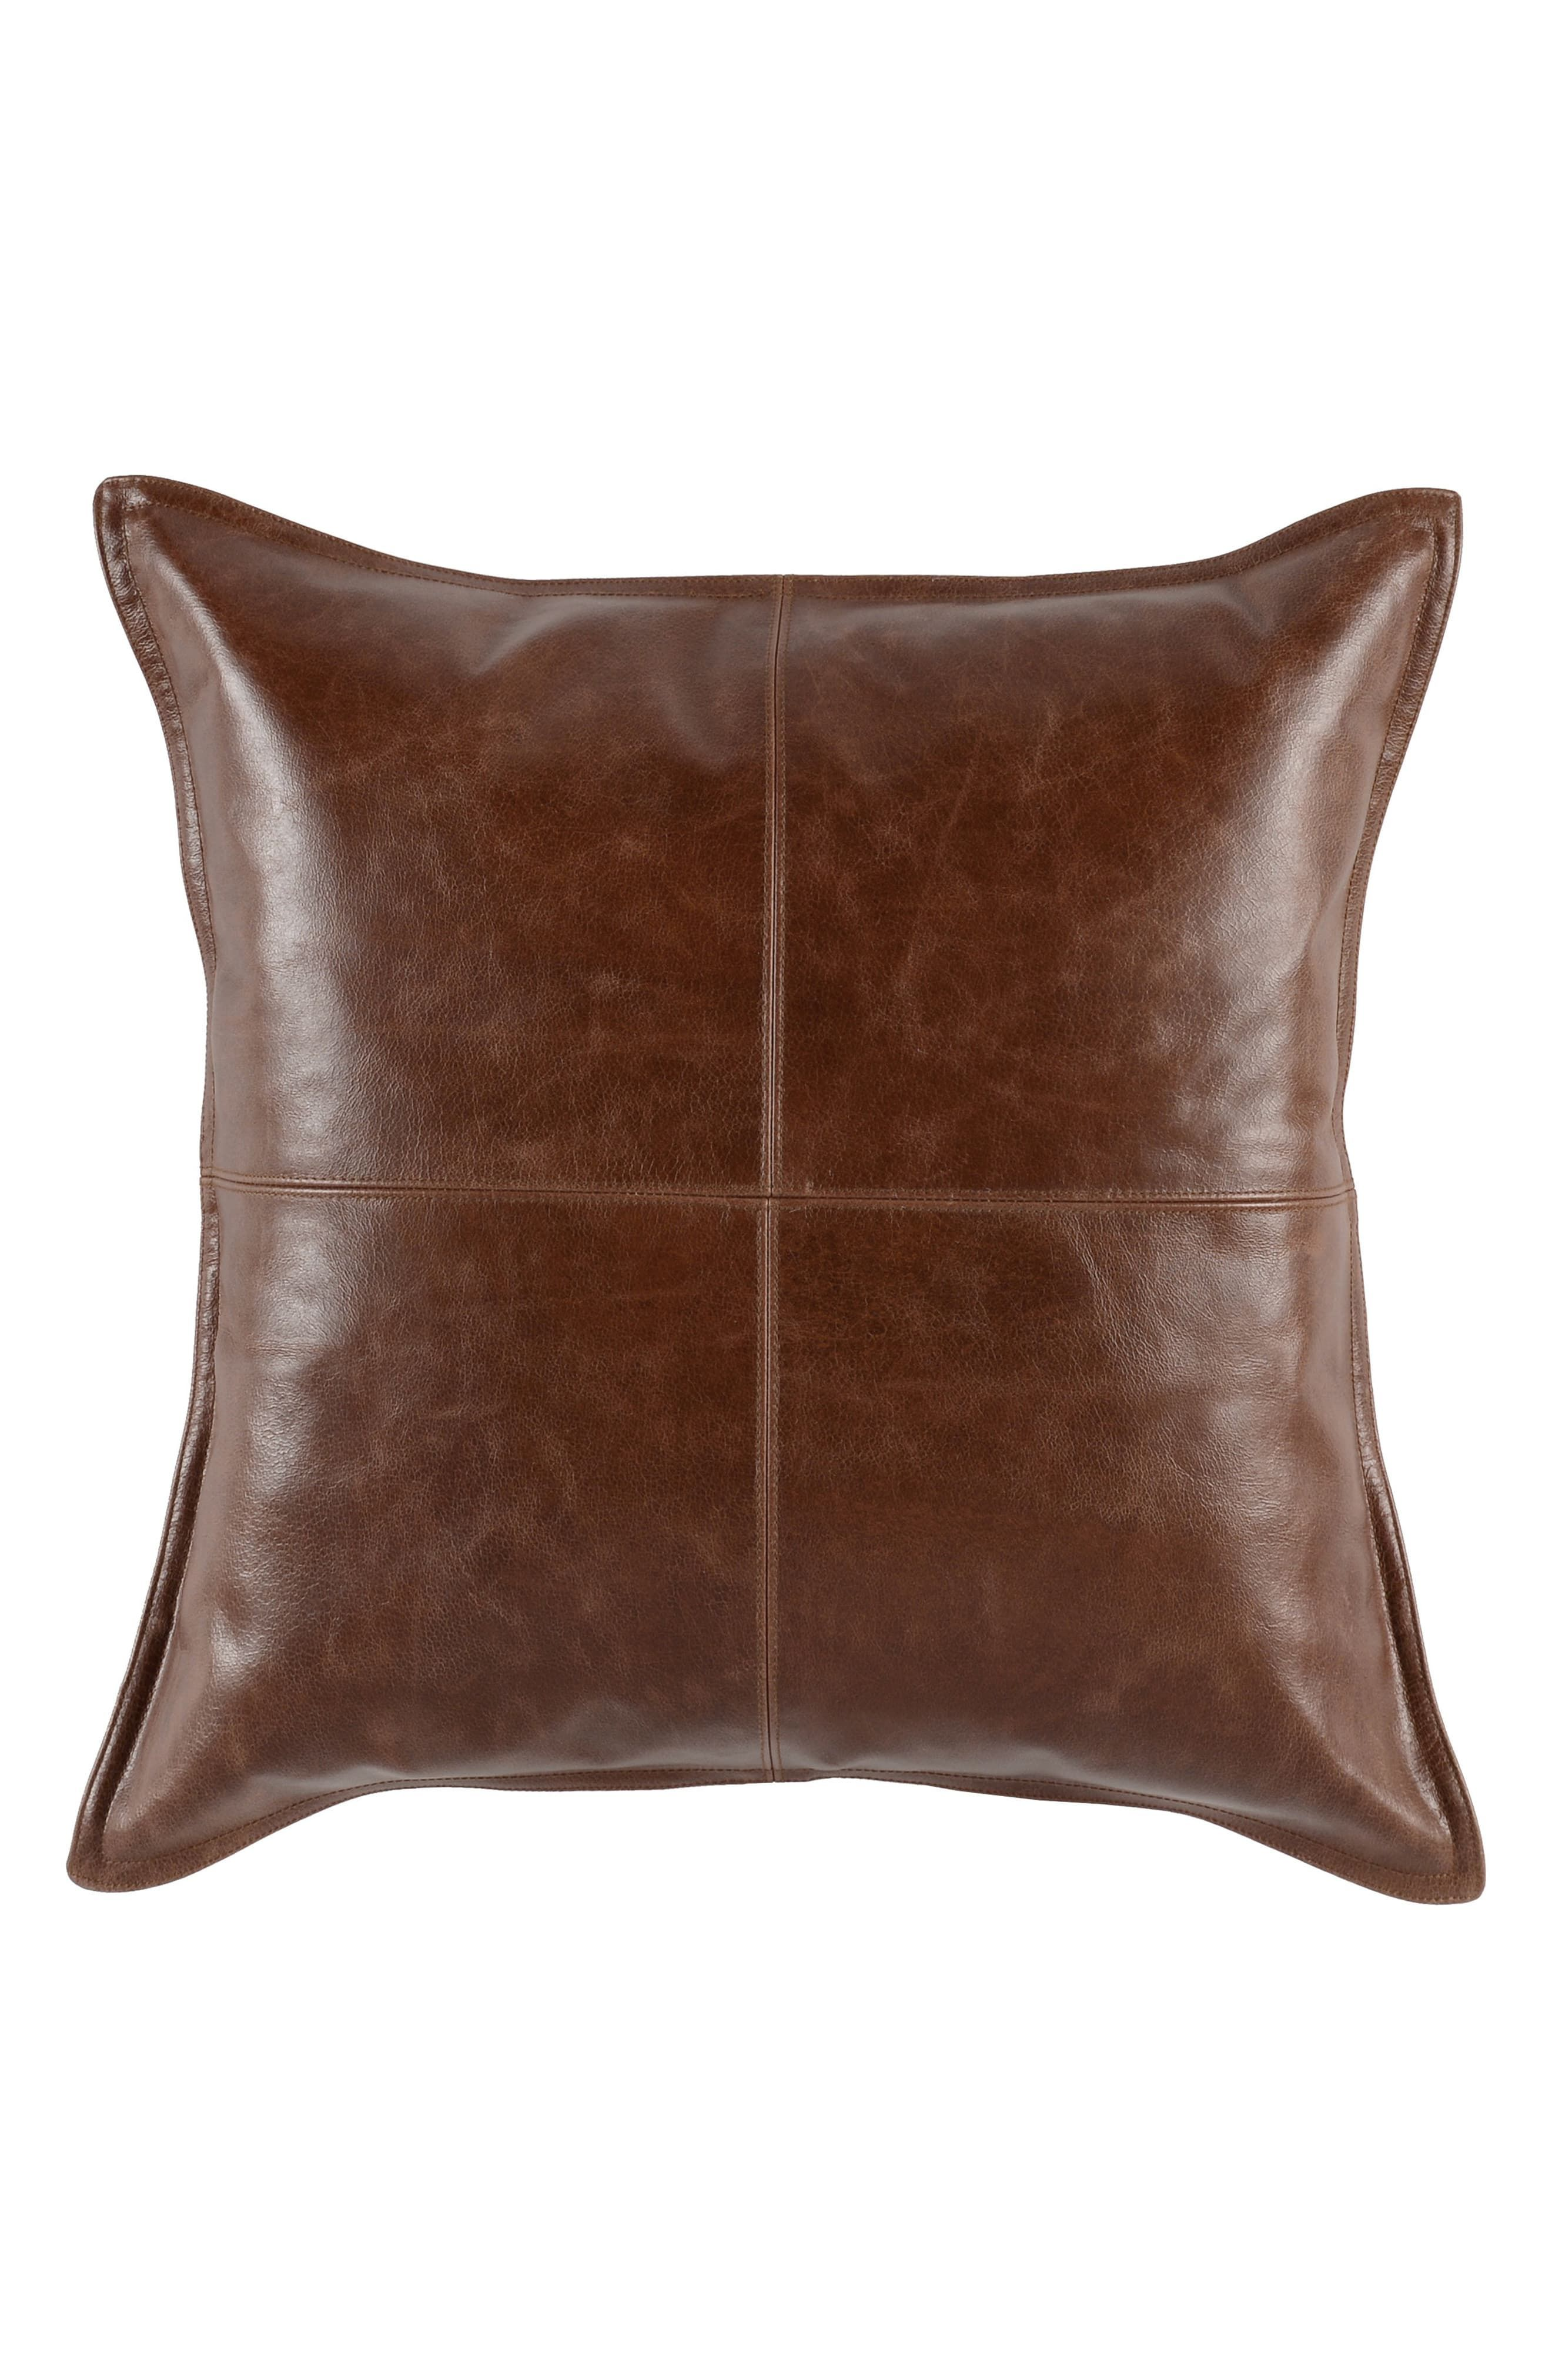 Kona Leather Accent Pillow